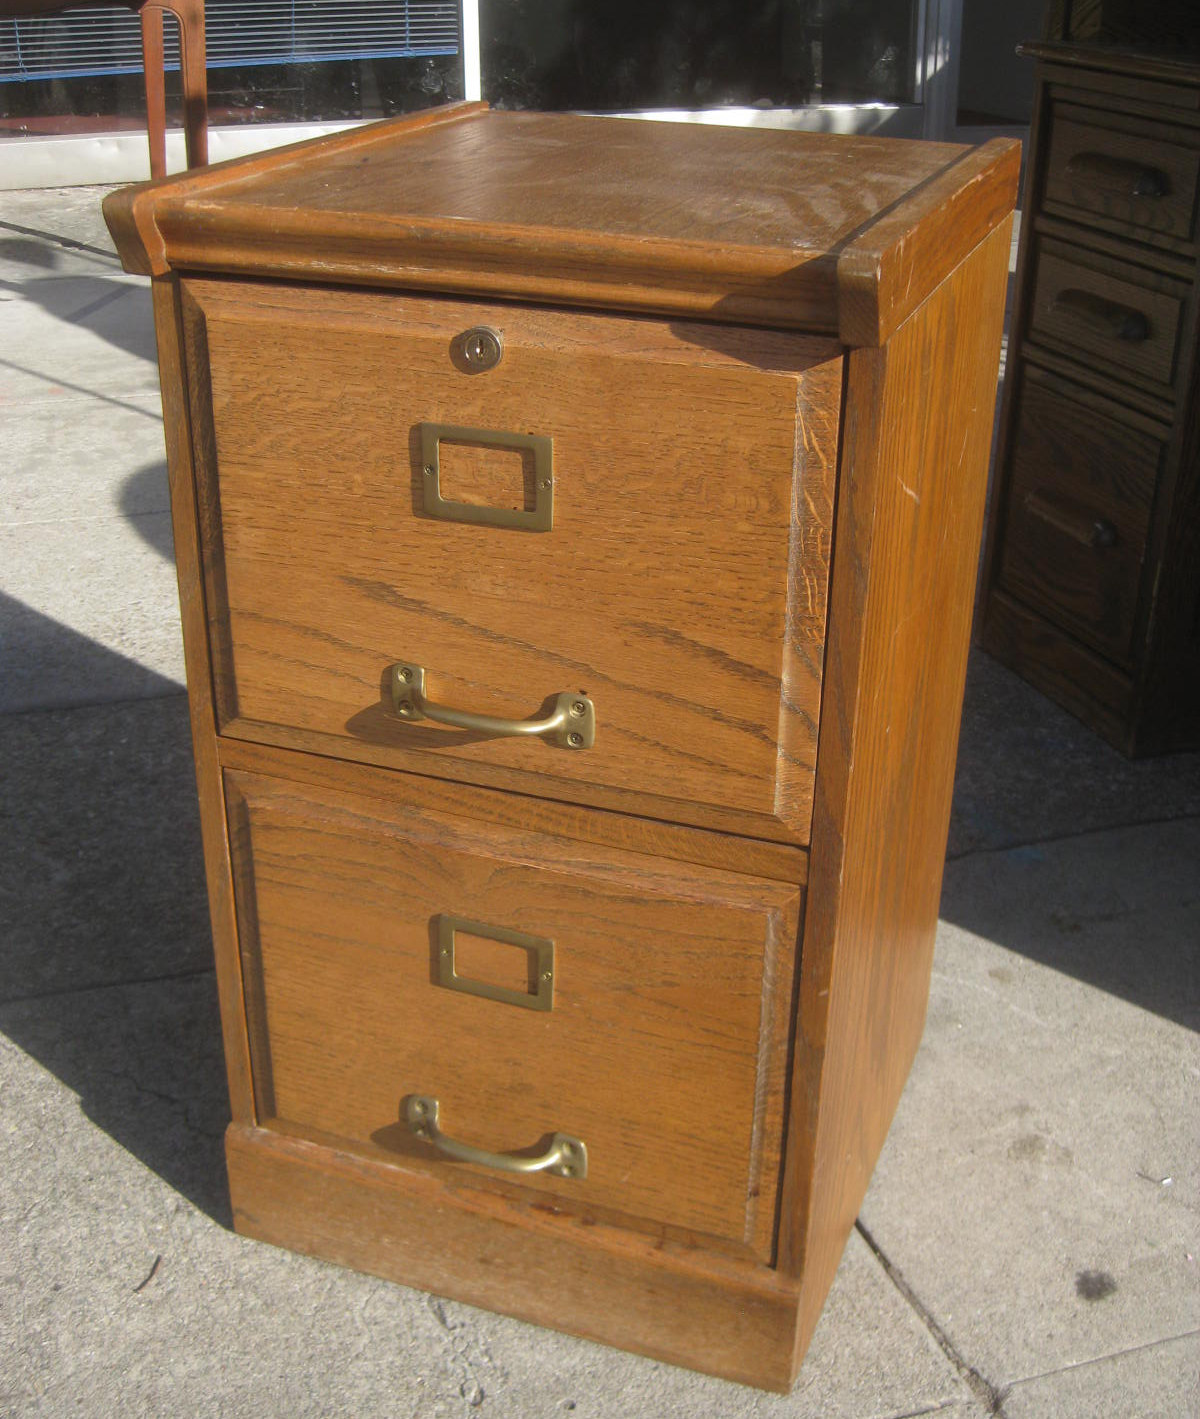 UHURU FURNITURE & COLLECTIBLES: SOLD - Oak 2-Drawer File ...